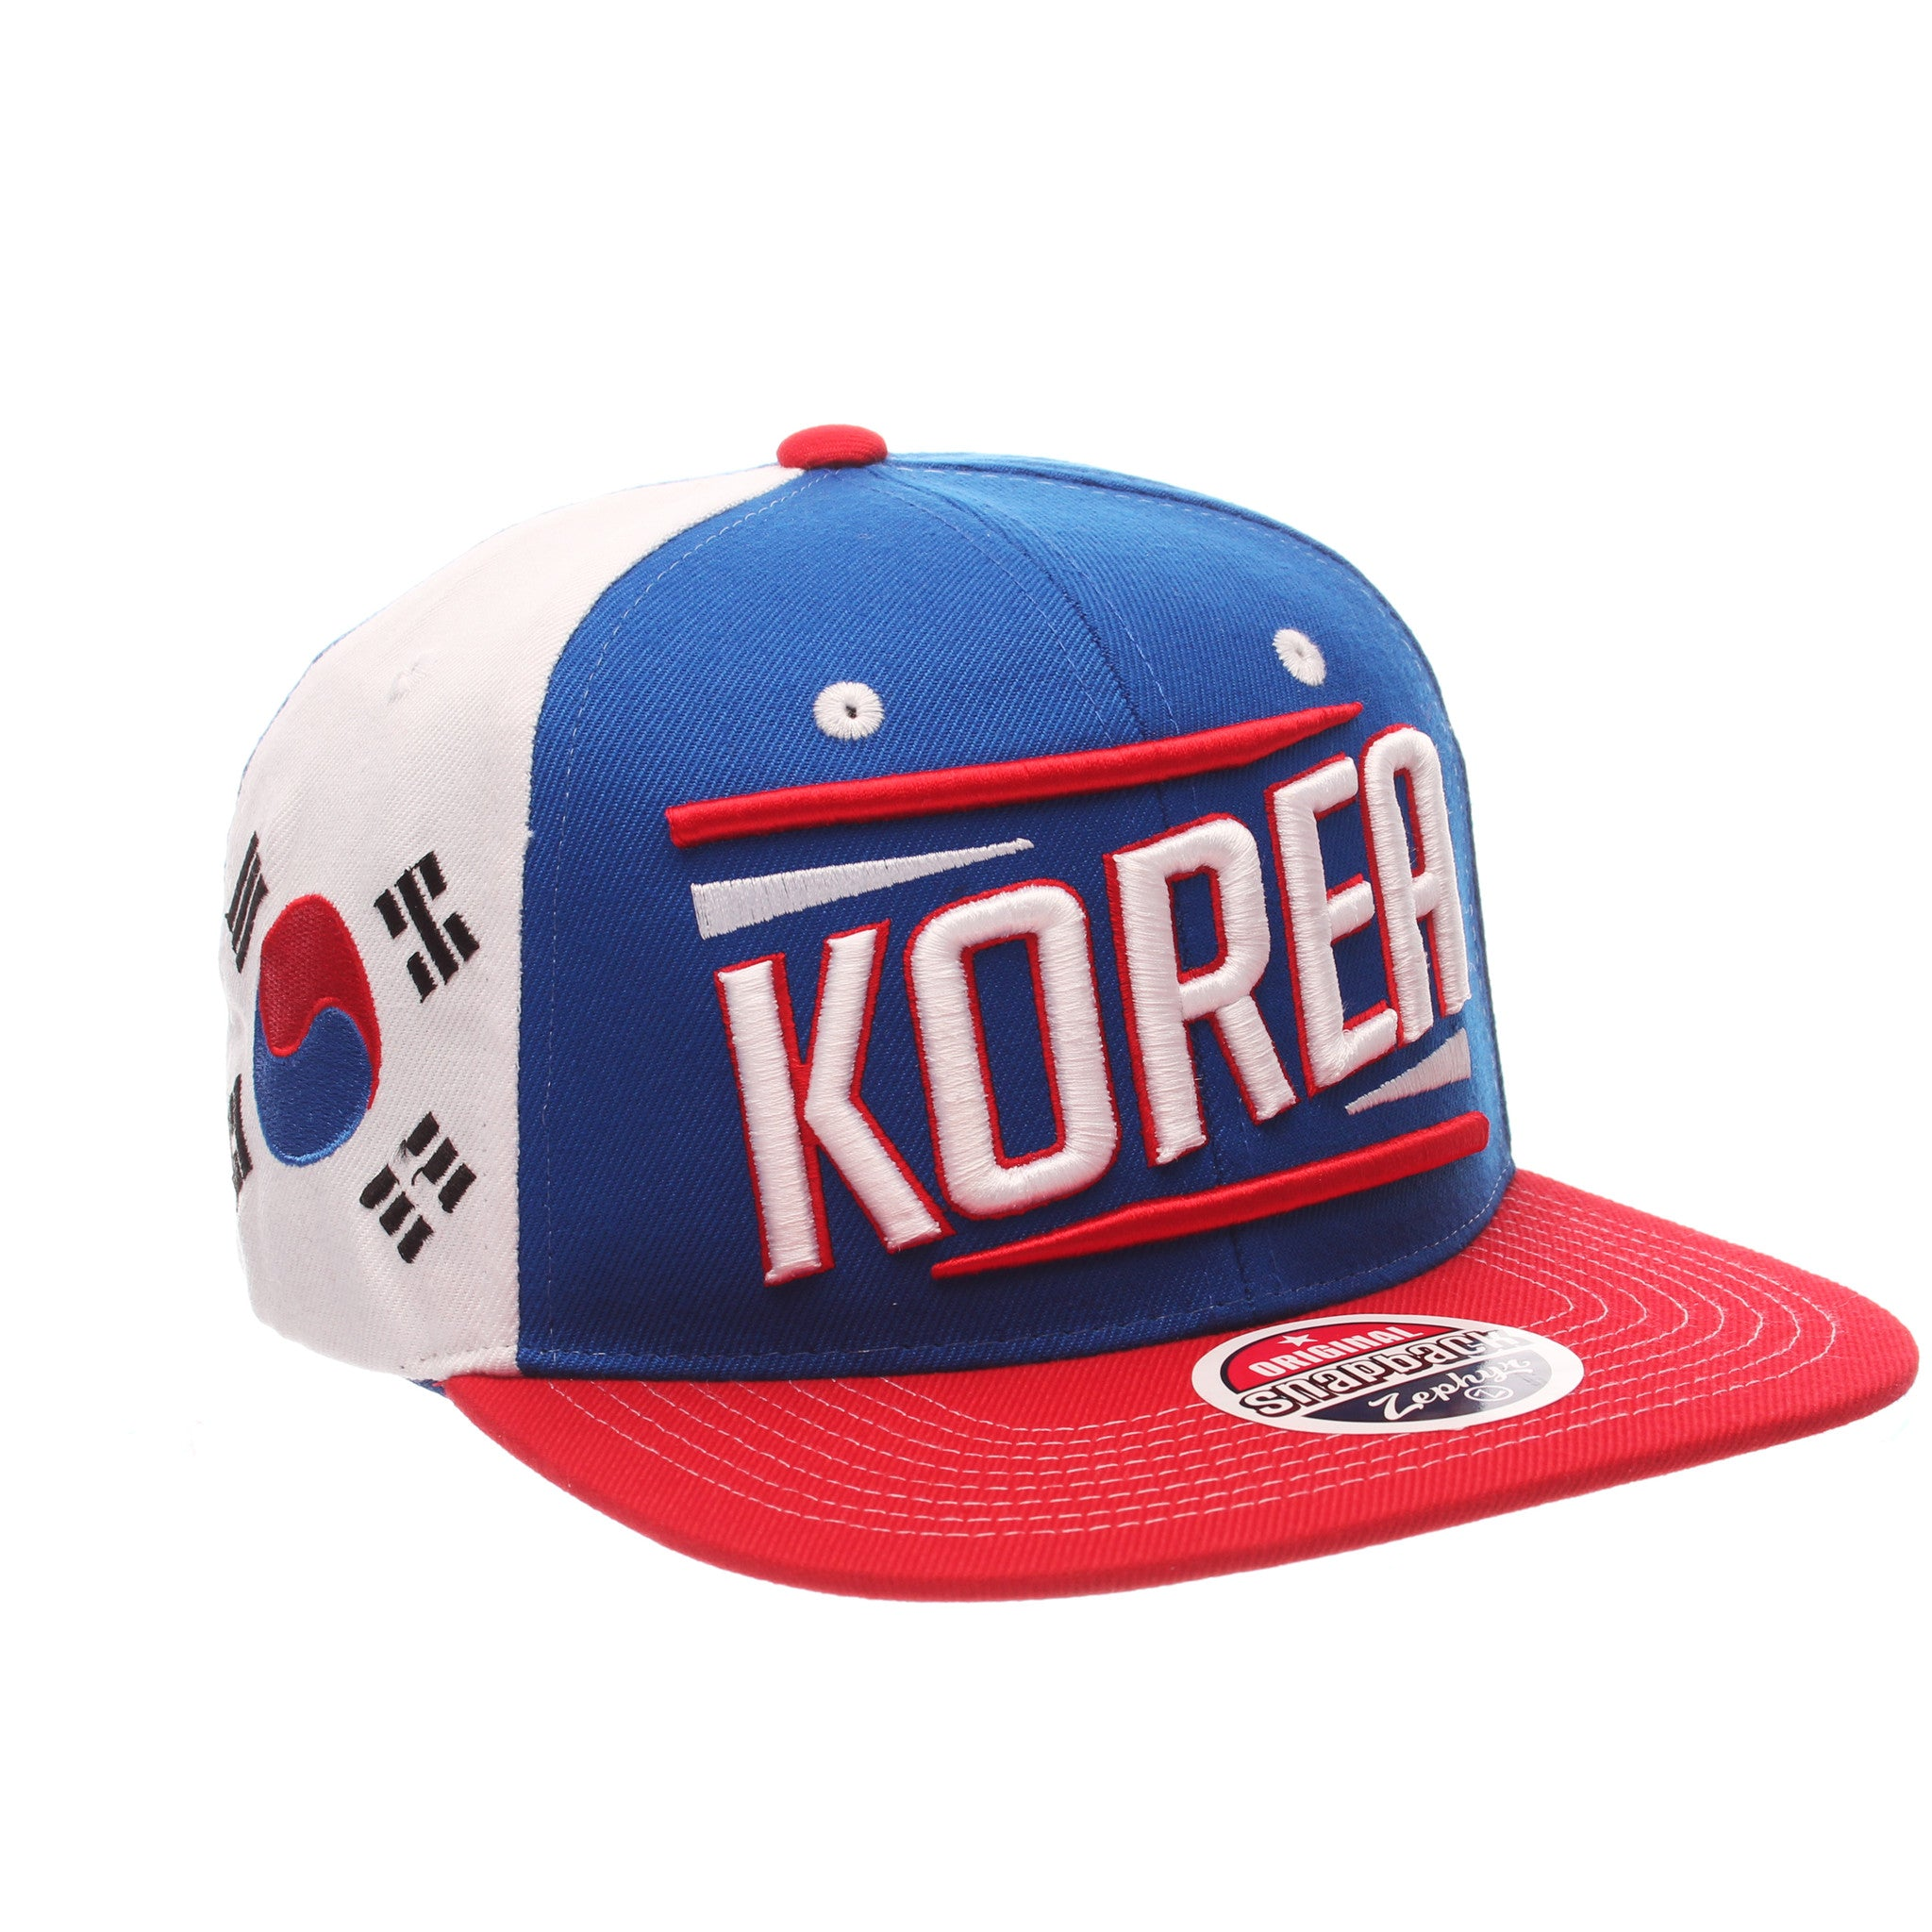 COUNTRY Victory 32/5 (High) (KOREA W/LINES) Varied Colors Varied Panels Adjustable hats by Zephyr